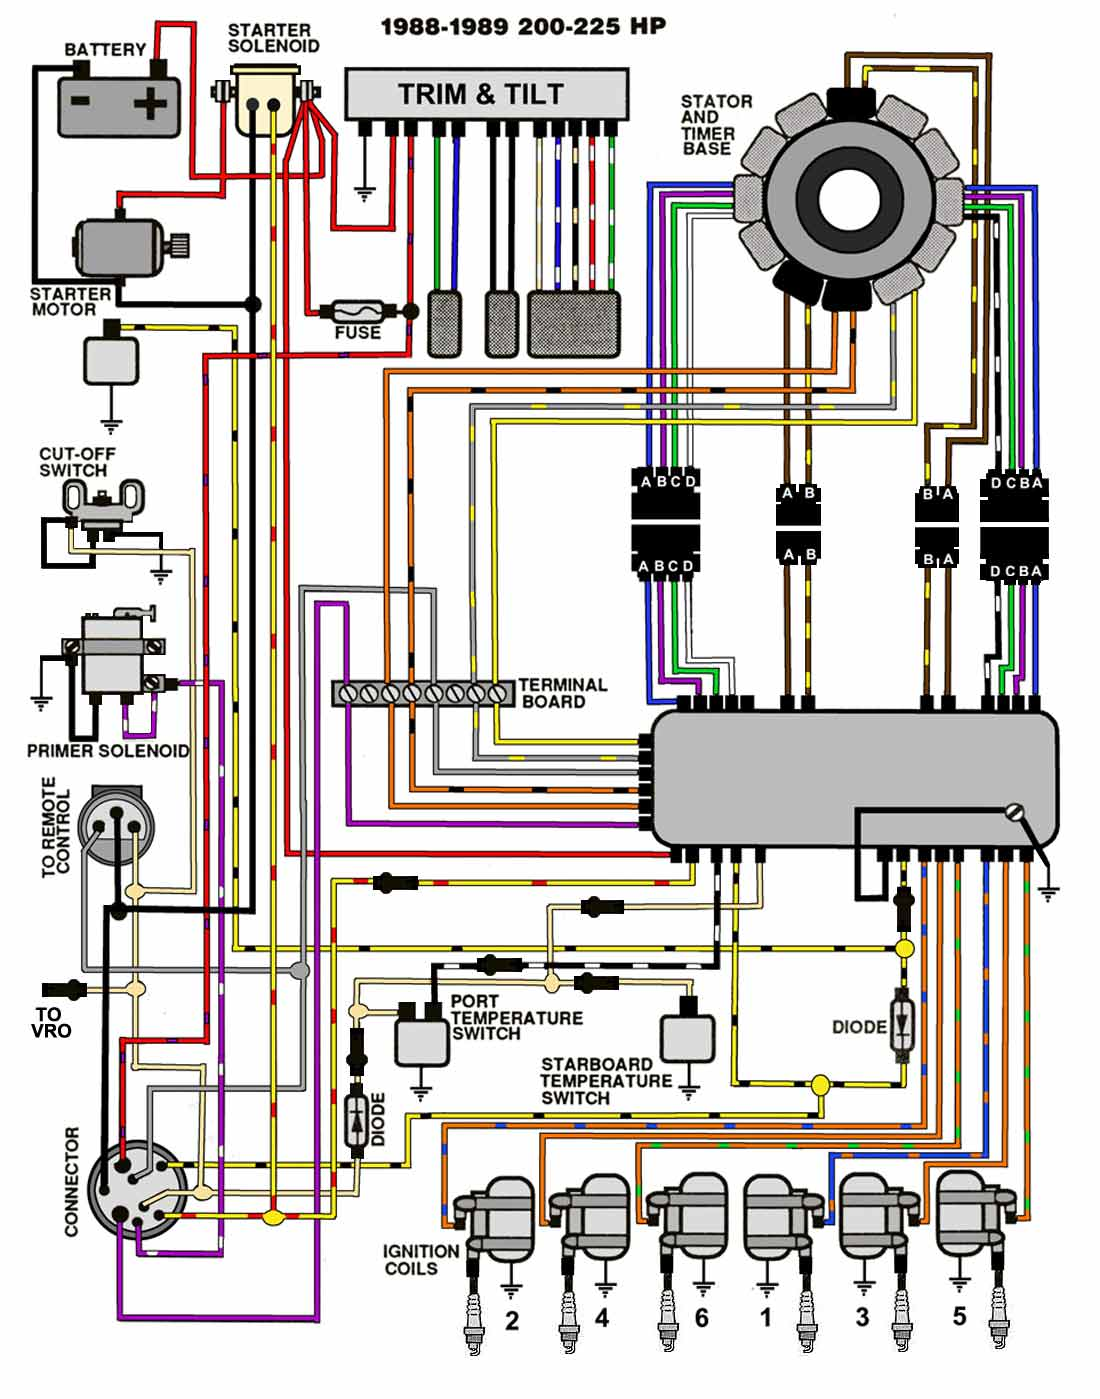 1988_89_200_225 johnson outboard wiring diagram johnson wiring diagrams collection  at gsmx.co